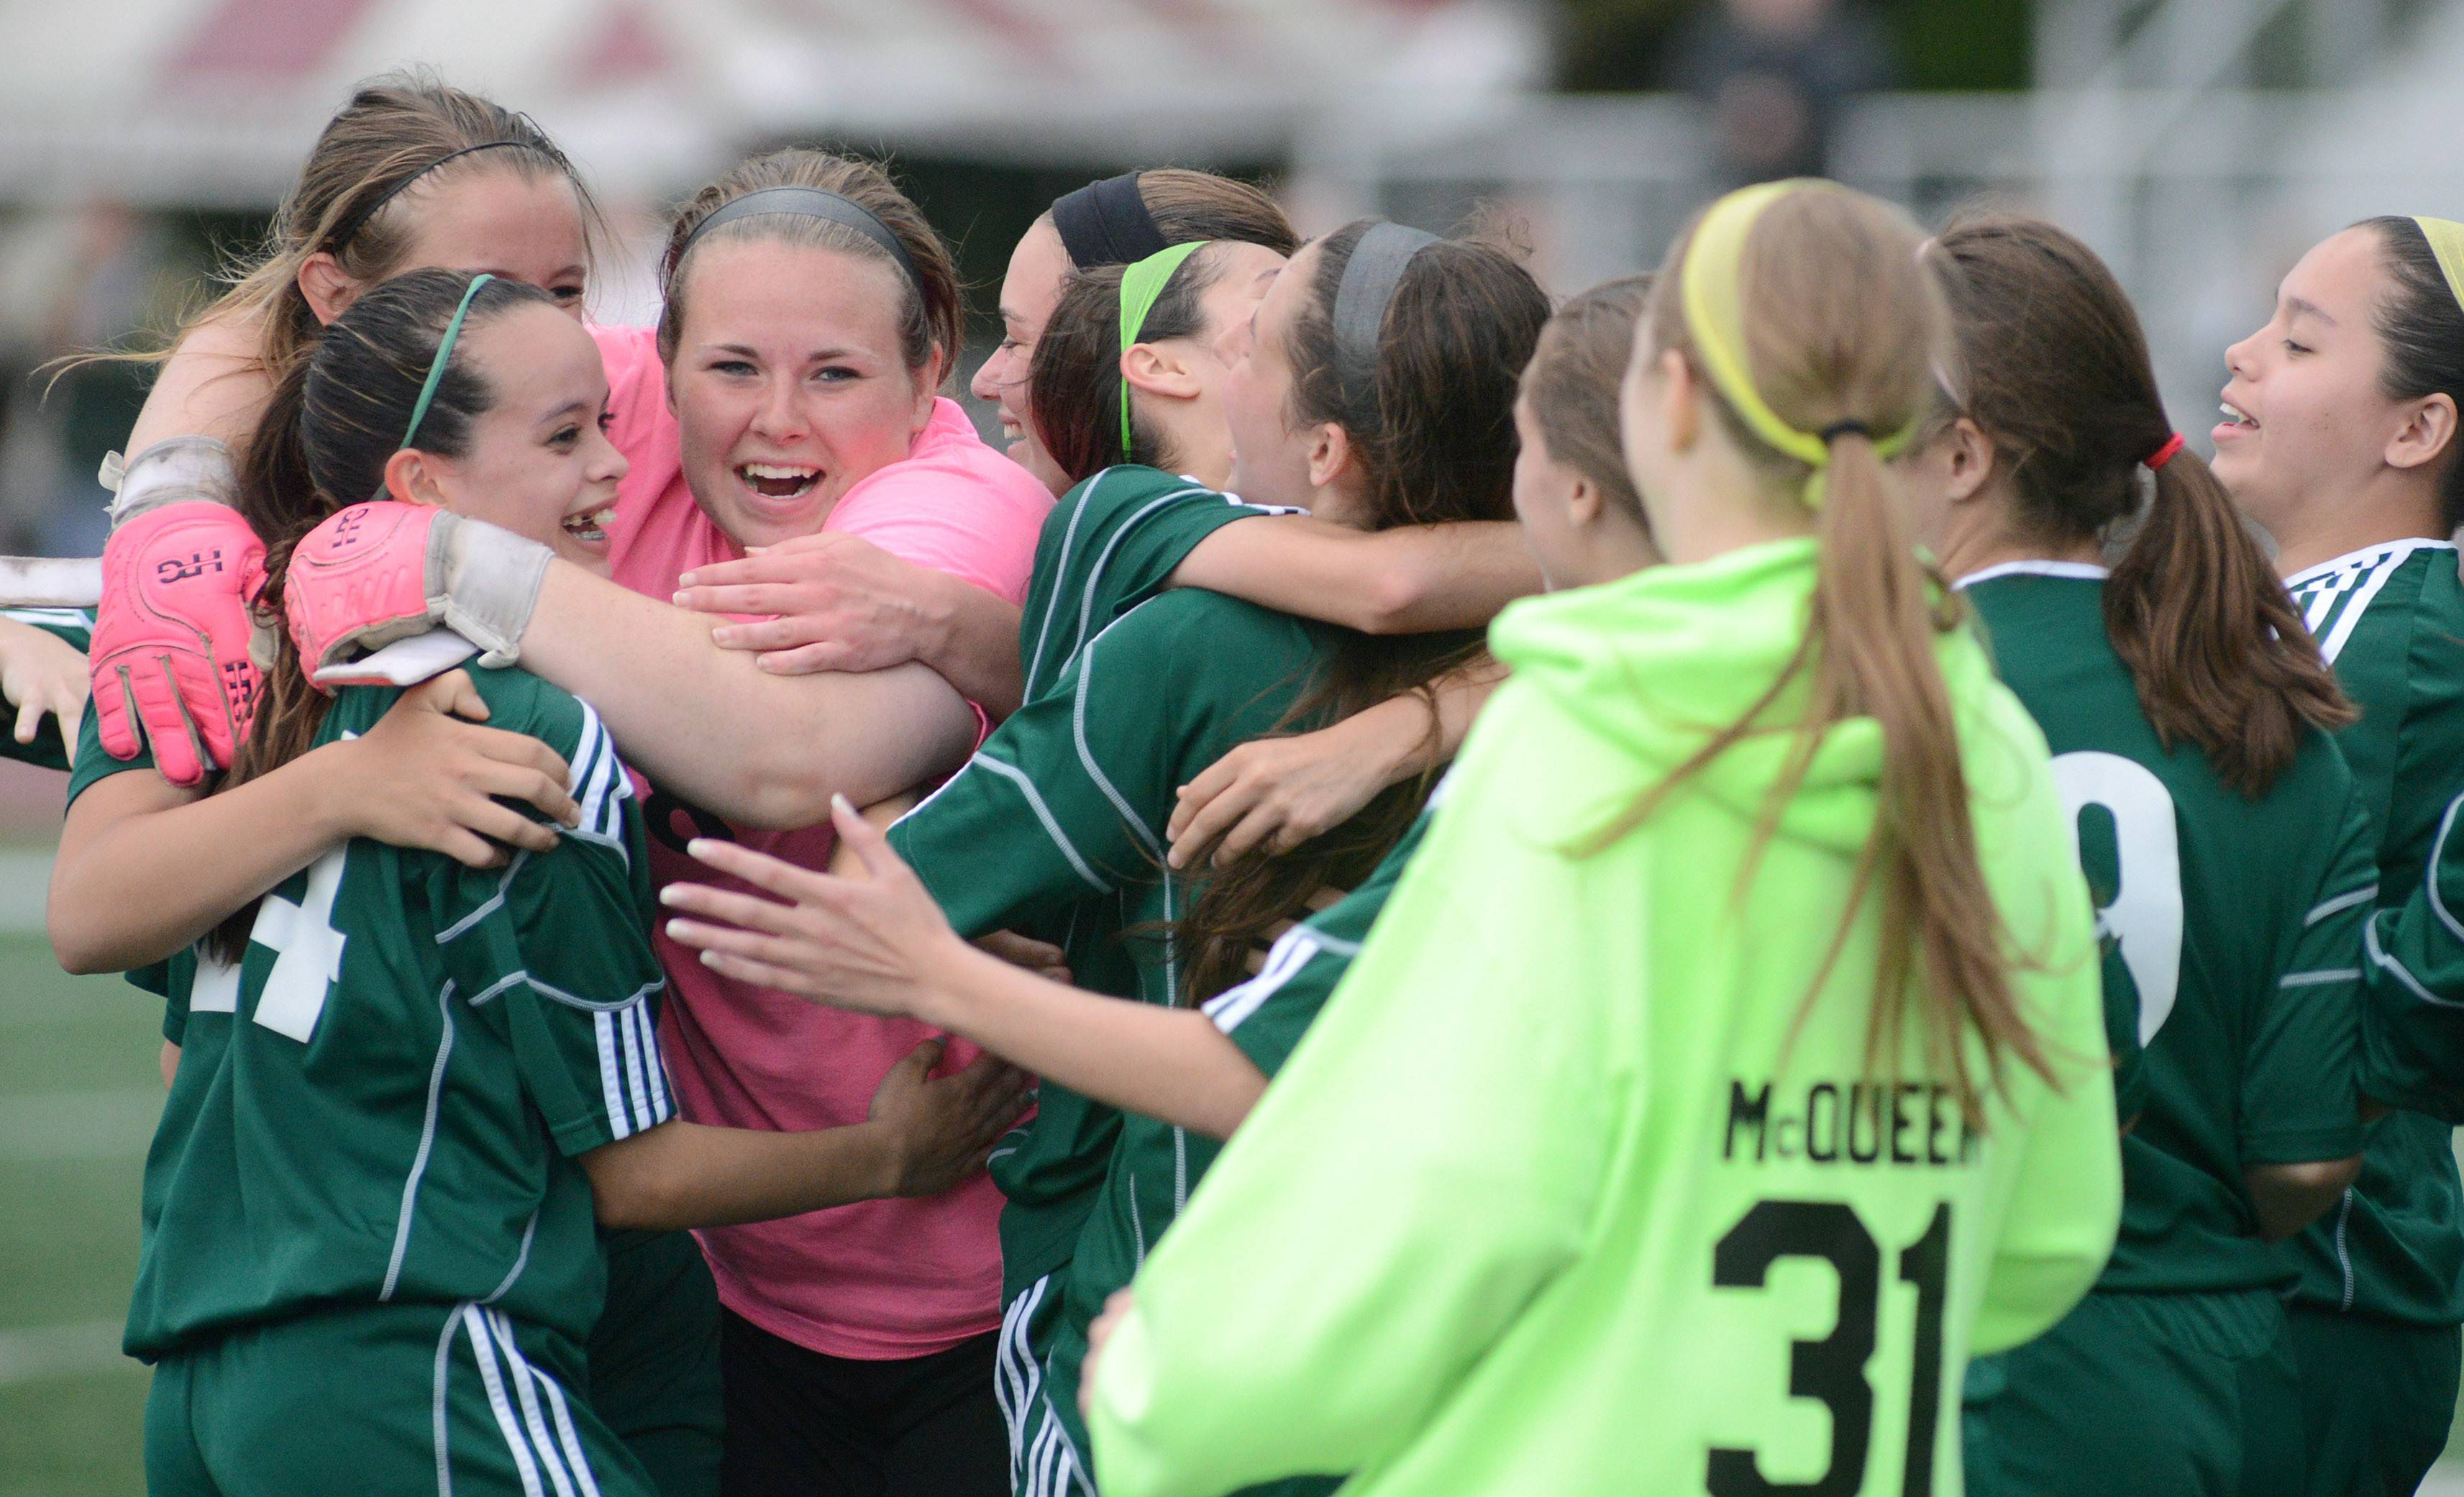 St. Edward goalie Paige Dykstra, facing, in pink, is swarmed by teammates as they rush the field after their Class 1A supersectional win over Chicago Latin at Concordia University in River Forest on Tuesday, May 27.